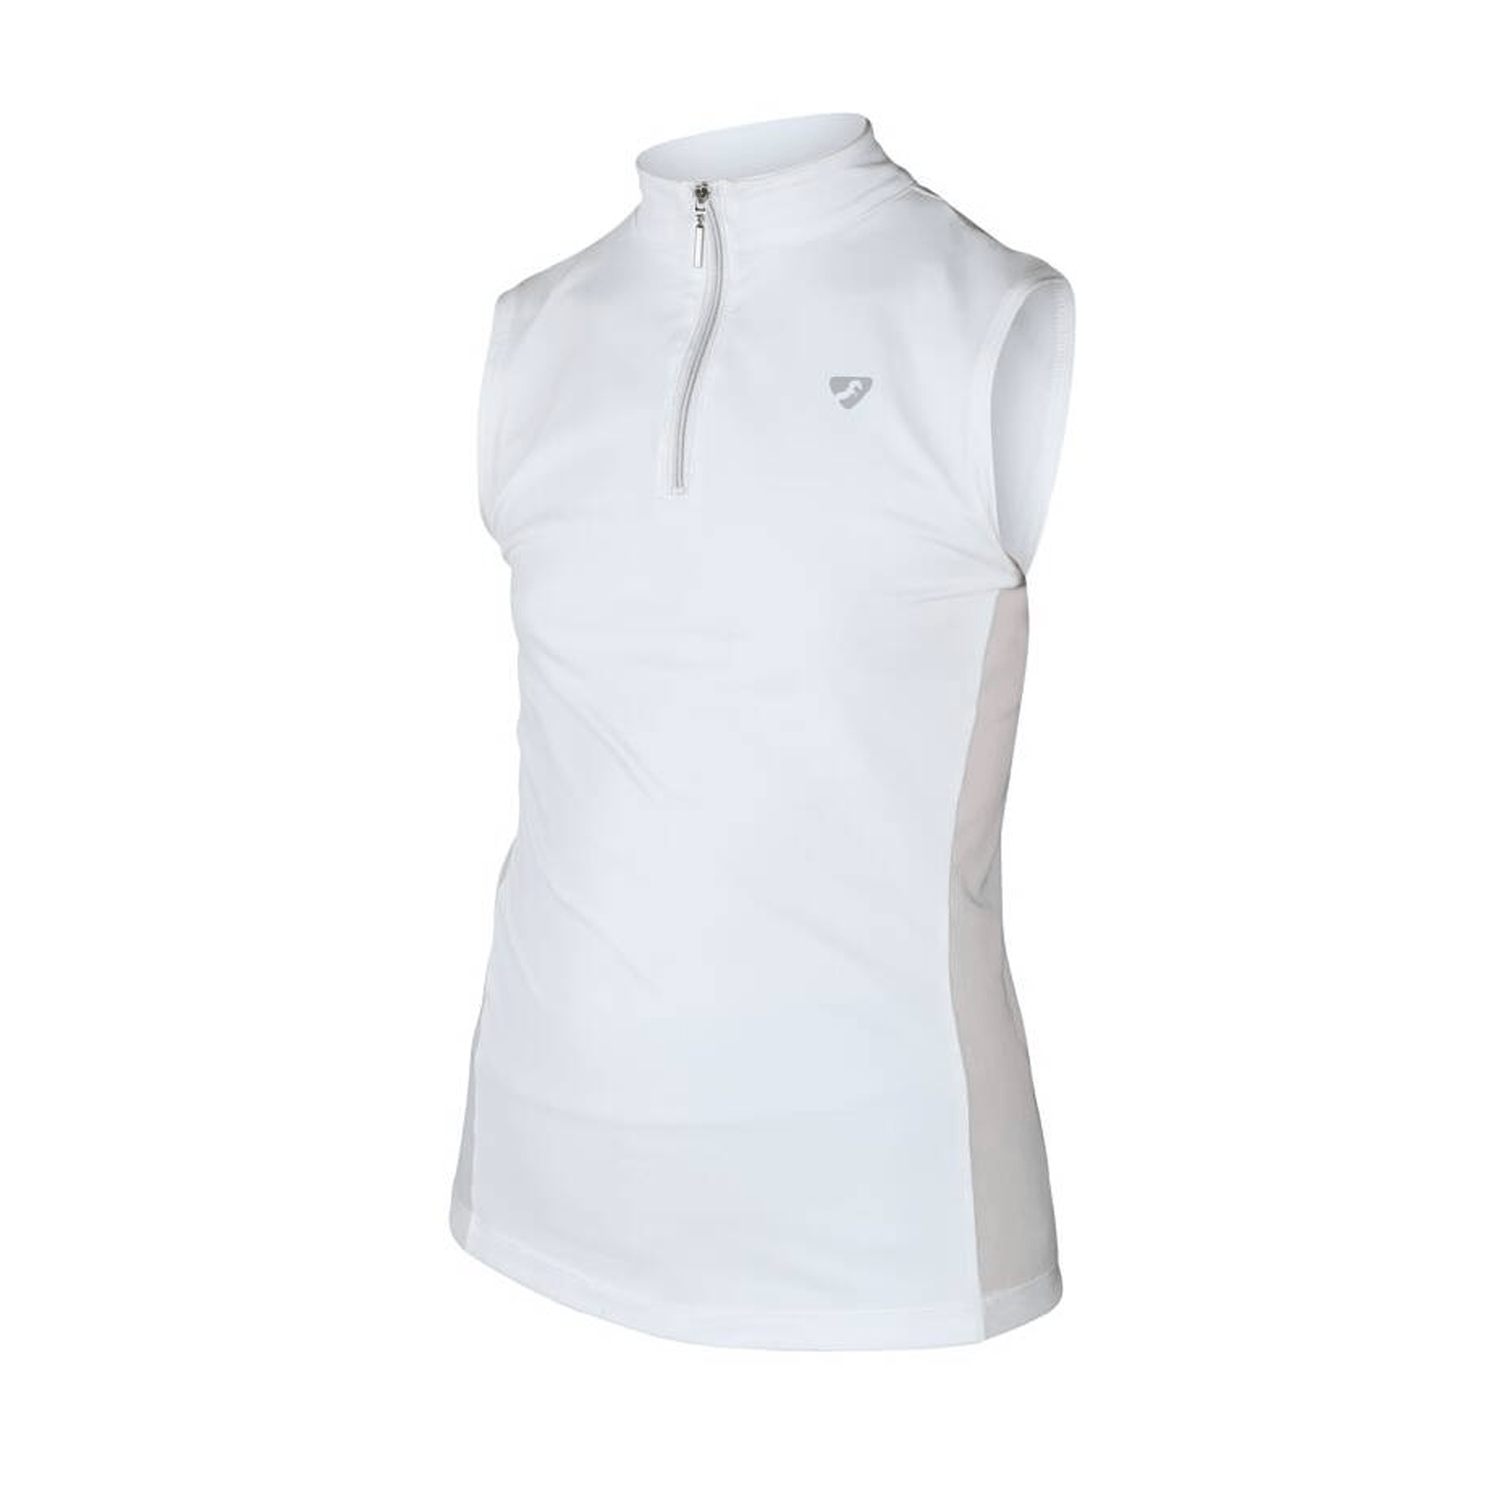 Shires Girl's Aubrion Elden Sleeveless Show Shirt | Free UK Delivery - EQUUS